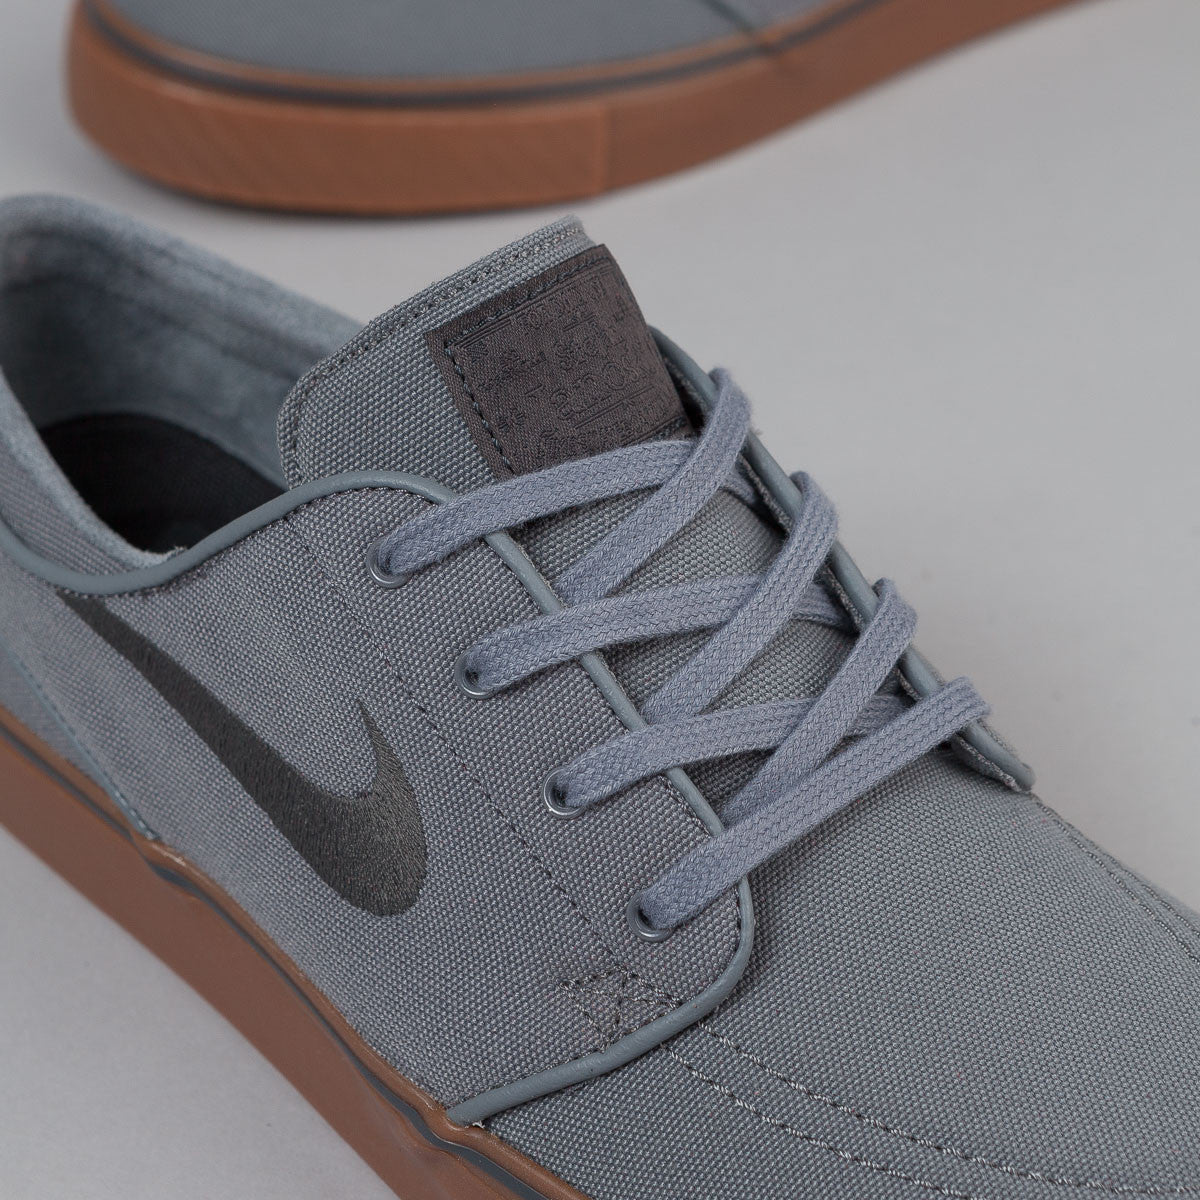 Nike SB Stefan Janoski Canvas Shoes - Cool Grey / Anthracite - Black - Gum Mid Brown